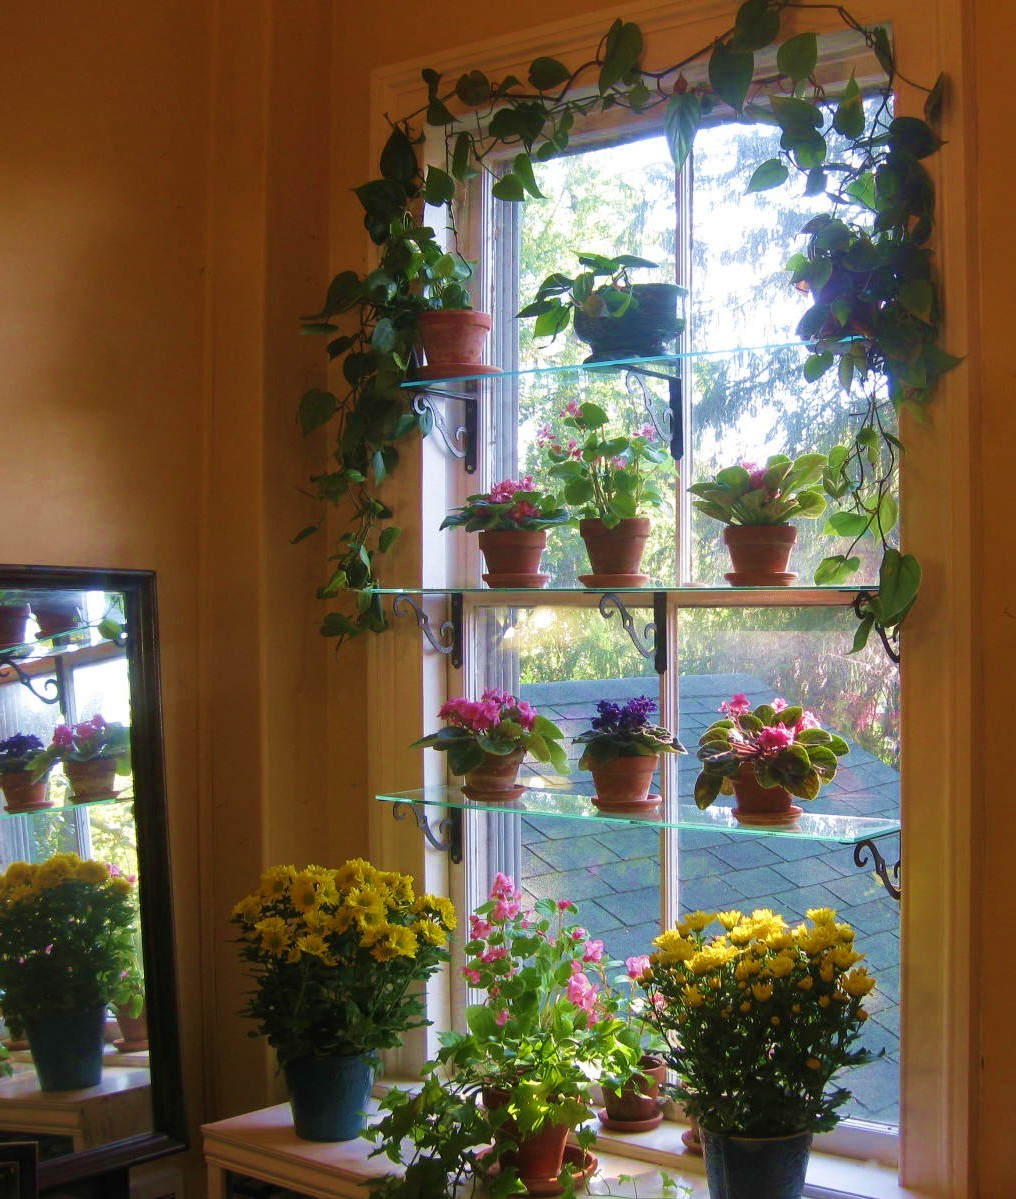 Kitchen Plant Shelf Decorating Ideas: Steps To A Window Garden